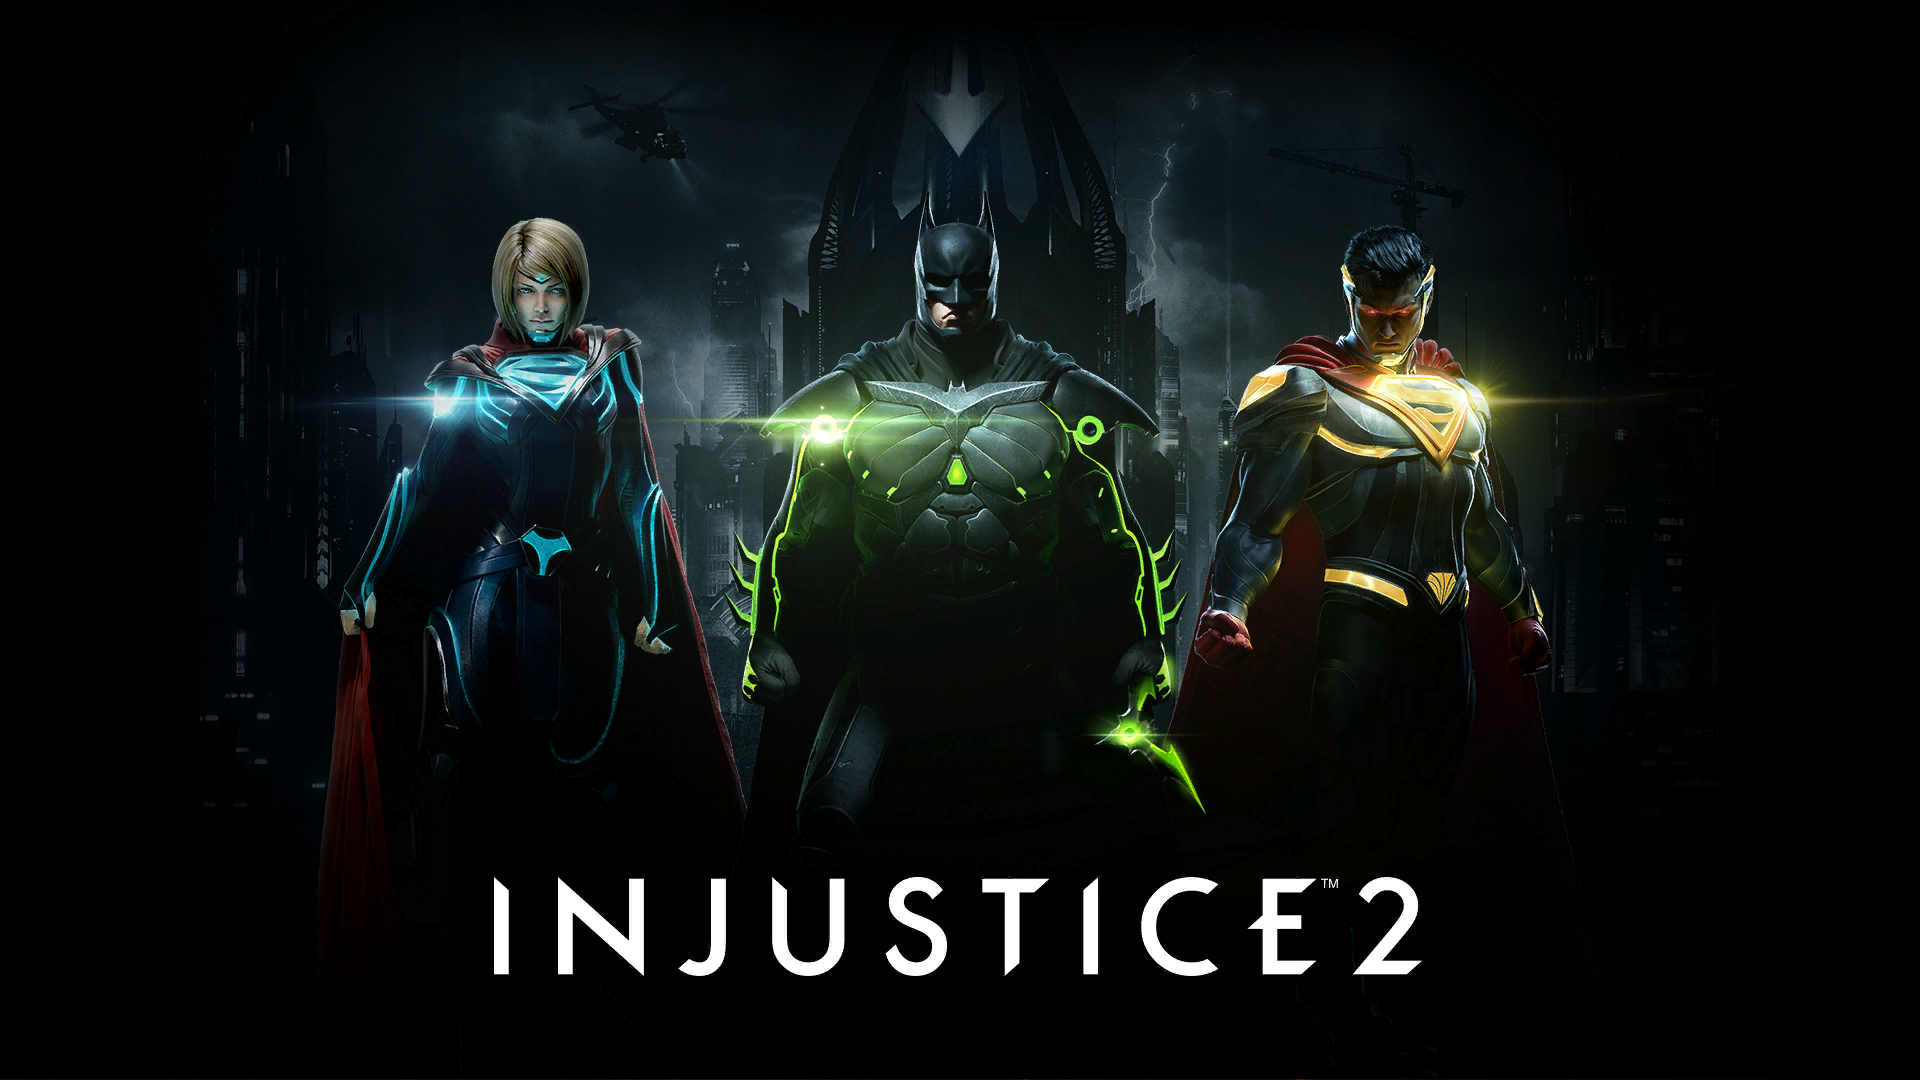 Injustice-PS-bootup-image-1920x1080-wallpaper-wpc9006543